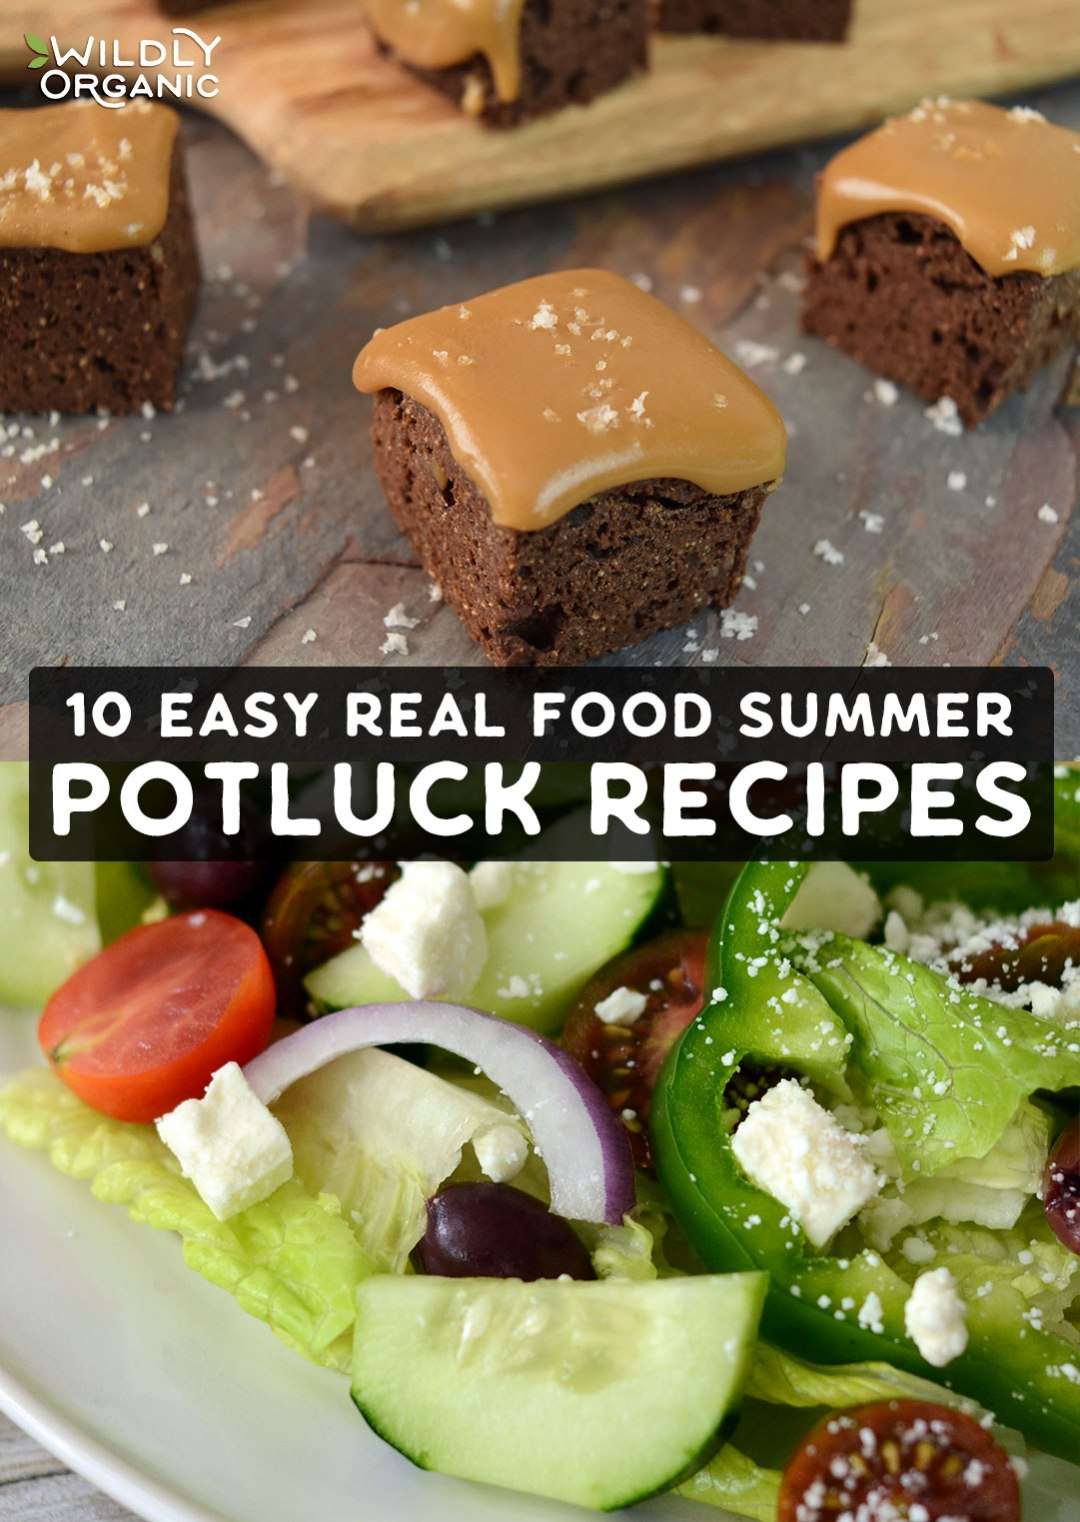 Photo of Salted Caramel Brownies and Greek Salad | 10 Easy Real Food Summer Potluck Recipes | These 10 easy real food summer potluck recipes will be all you need to bring along to your next Summer bash. Full of real food ingredients that are good for the body and soul, everyone can enjoy these delicious recipes. #realfood #cleaneating #potluck #summerfood